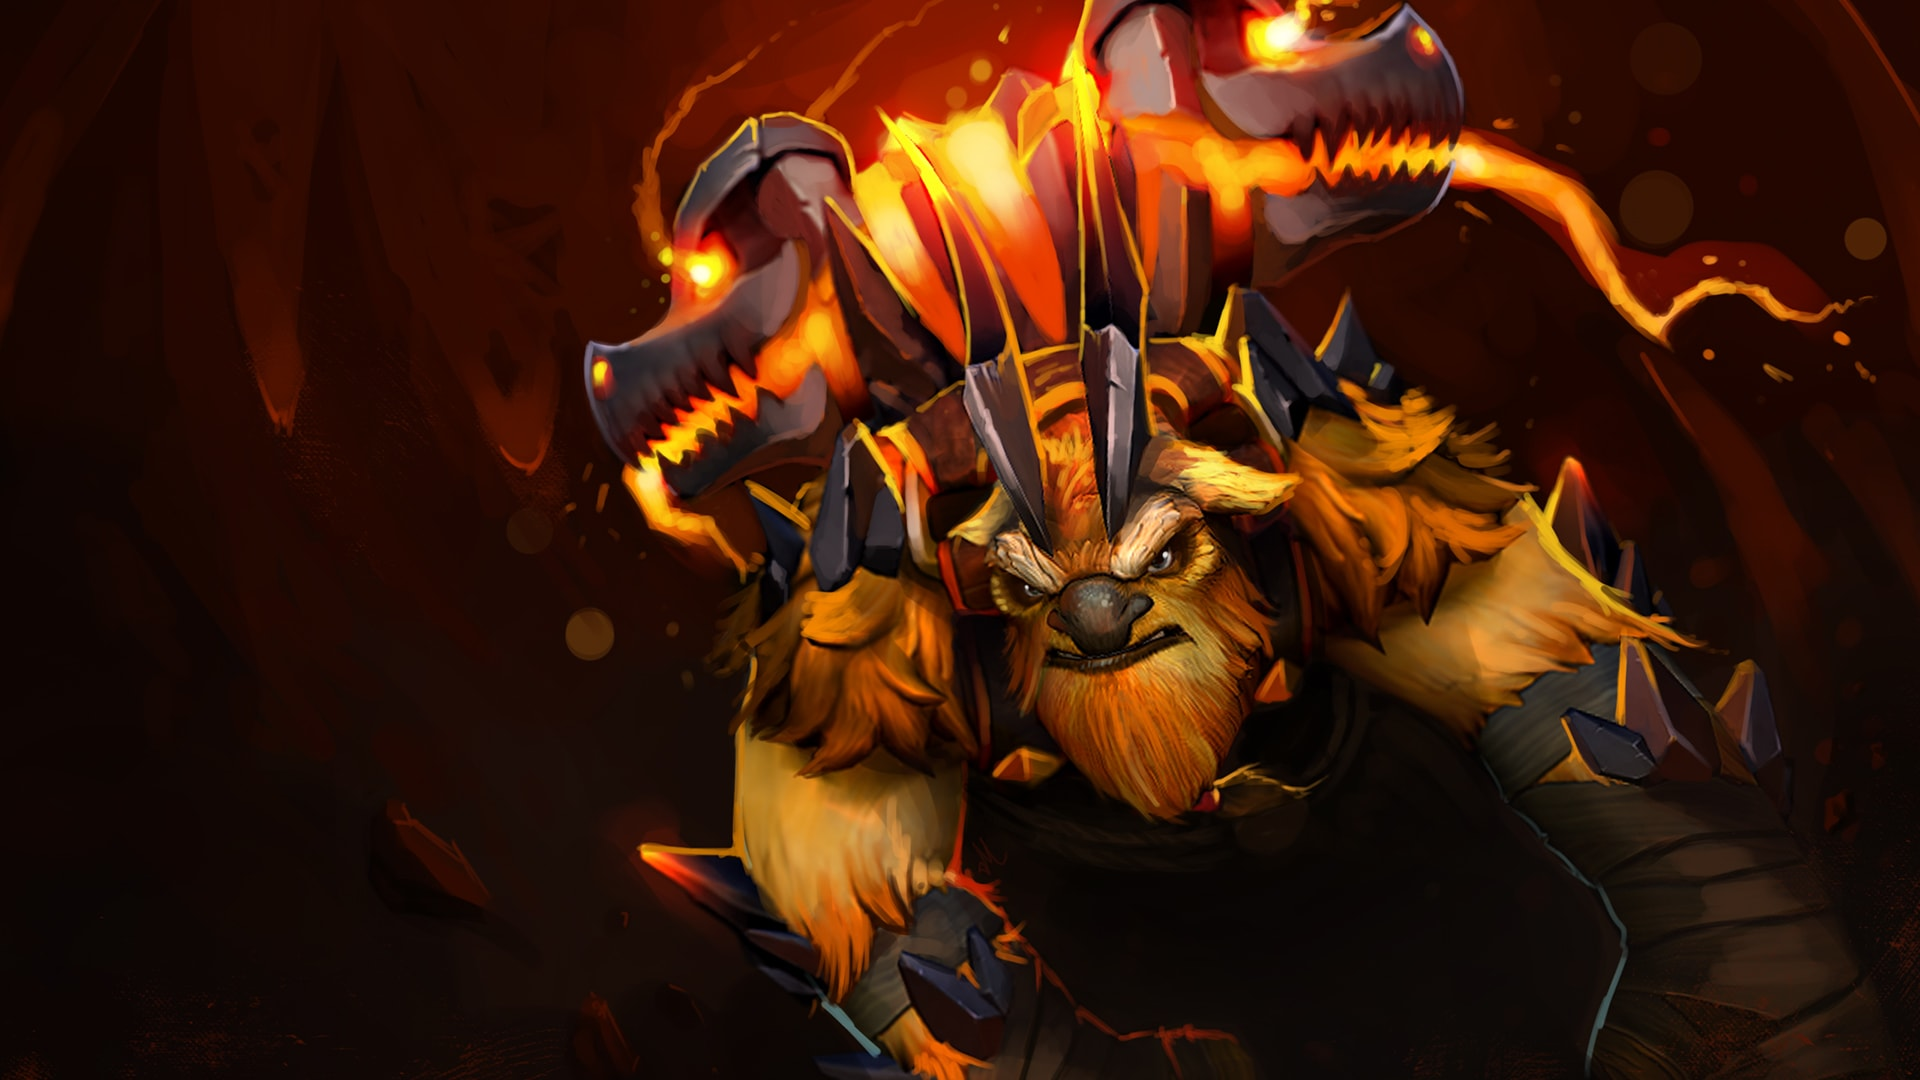 Dota2 : Earthshaker Wallpapers